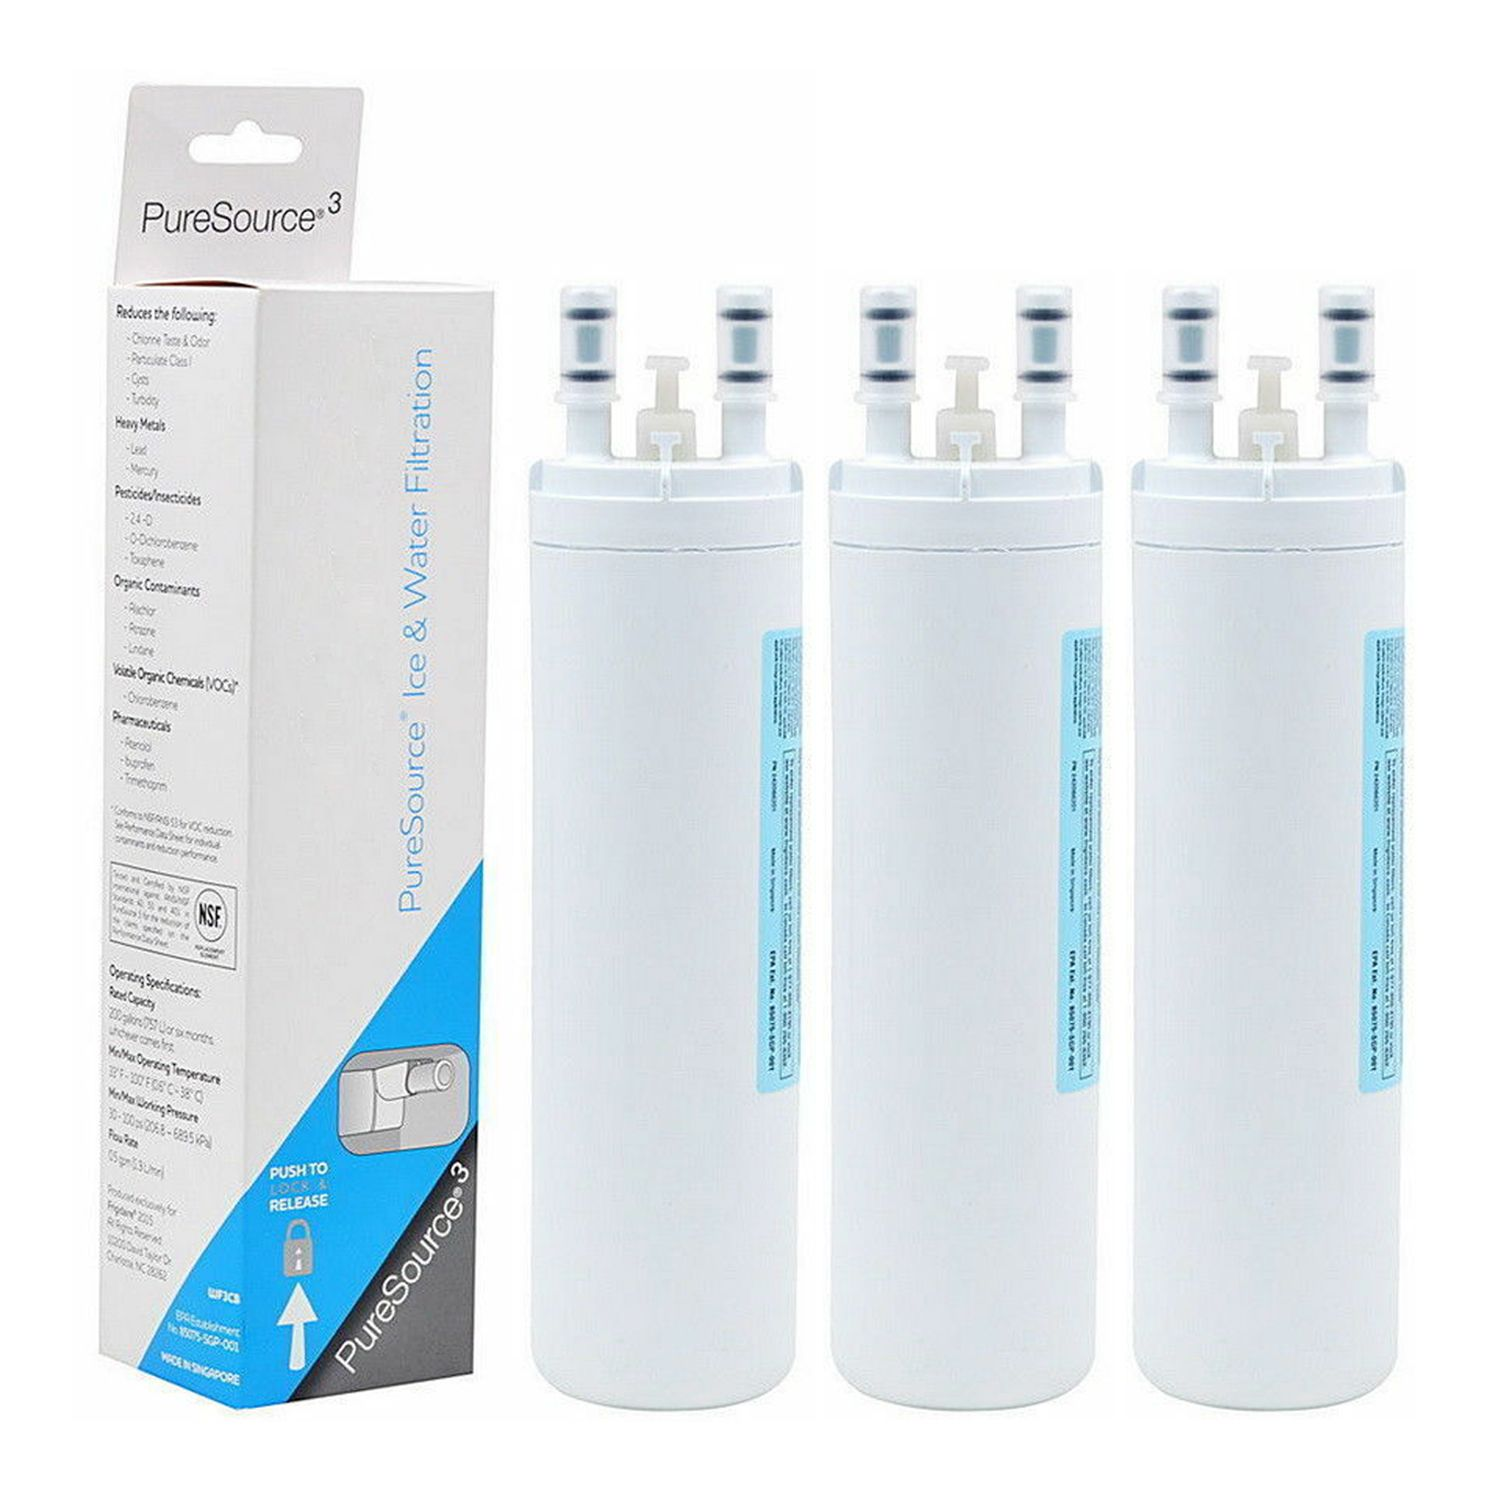 3 Pack Of Refrigerator Water Filter Replacement For Frigidaire Wf3cb Puresource 3 Ice Water Filt Refrigerator Water Filter Frigidaire Countertop Water Filter